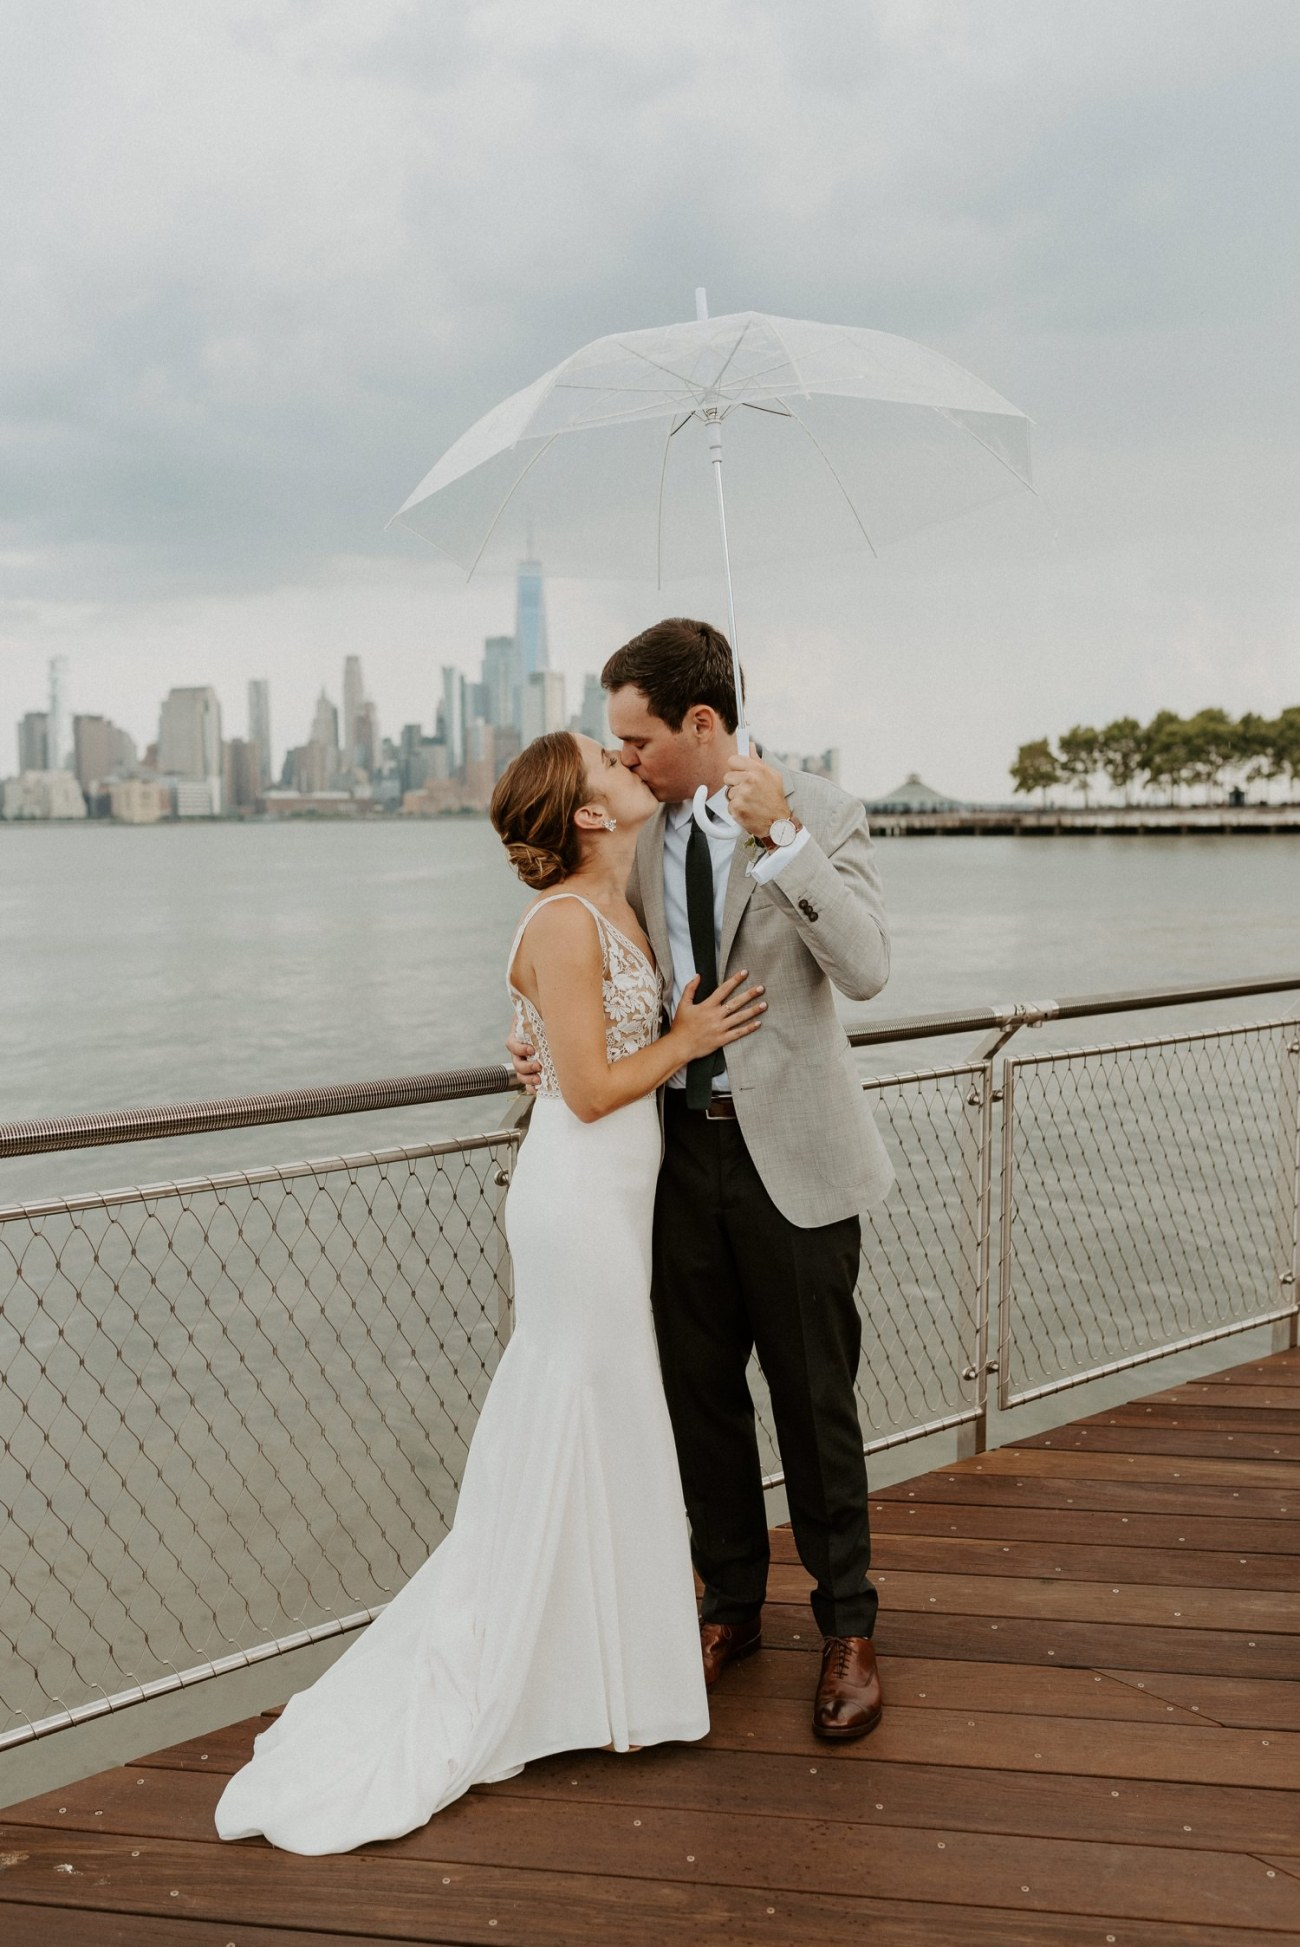 Antique Loft Hoboken Wedding New Jersey Wedding Photographer Anais Possamai Photography 043